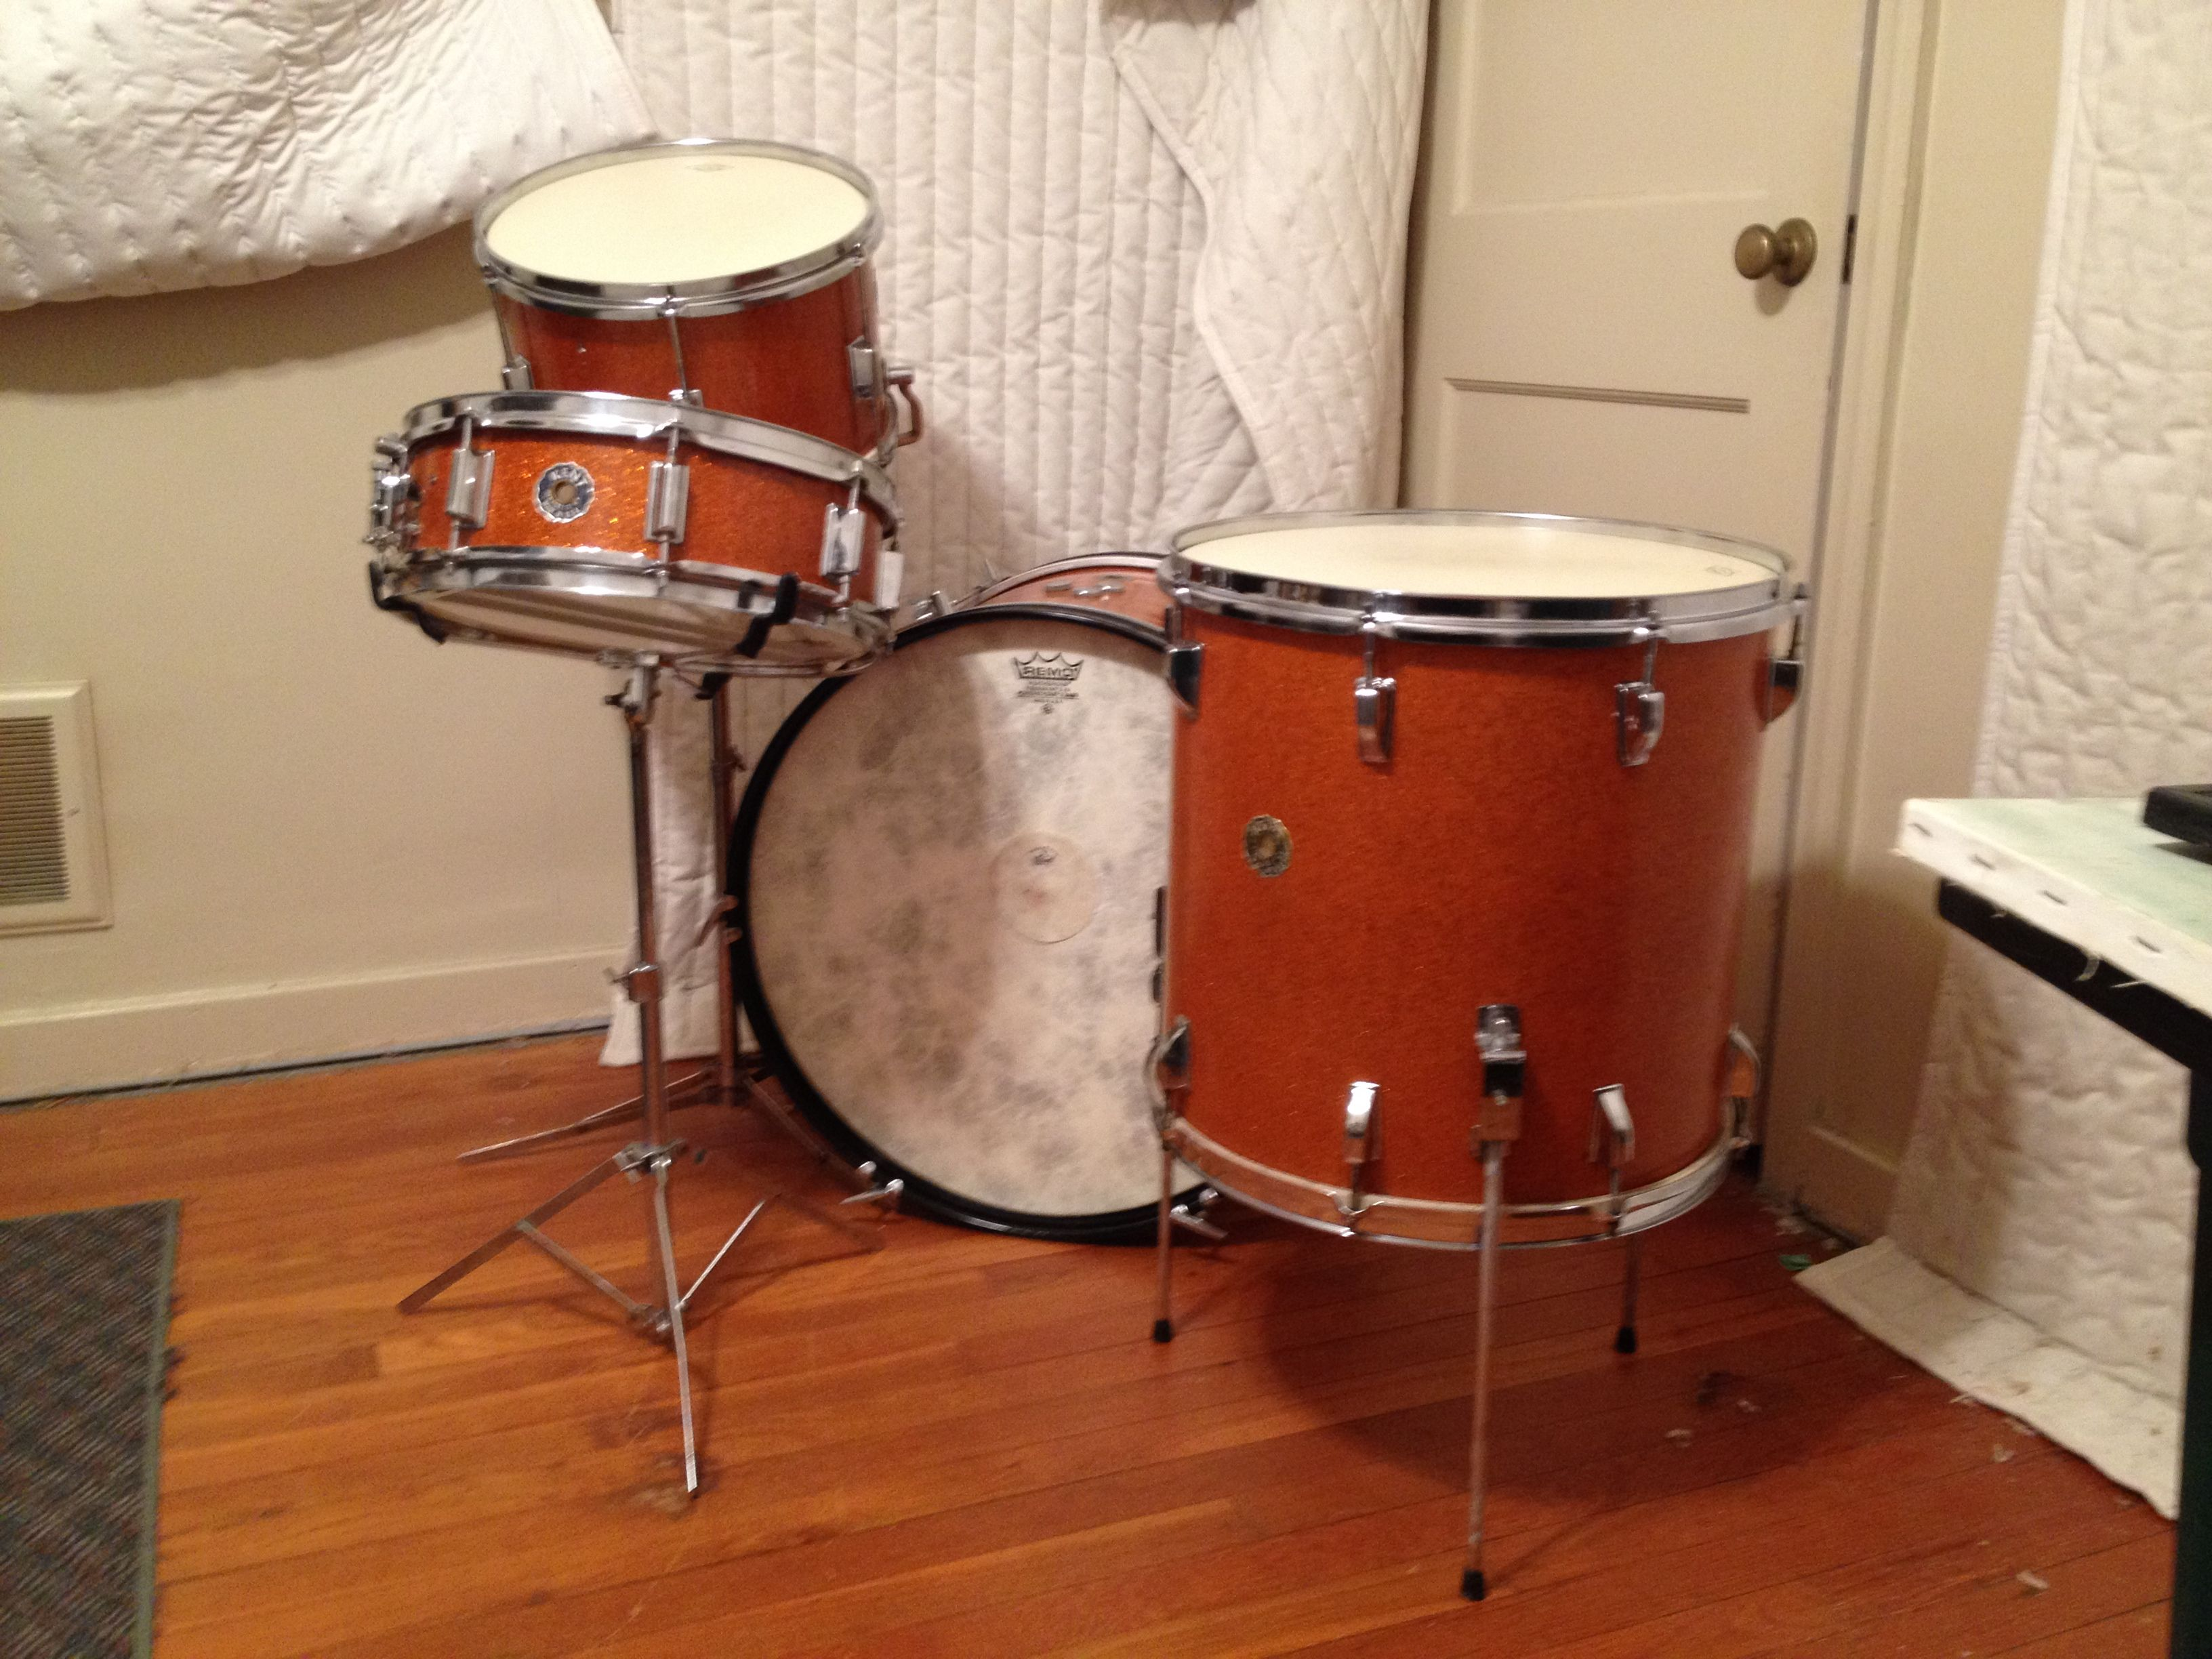 13 16 22 Orange Sparkle 4x14 Max Roach Size Snare Fiberskyn Powerstroke 3 Batter And Reso Bass Heads And Aquarian Modern Vinta Vintage Drums Bass Head Drums